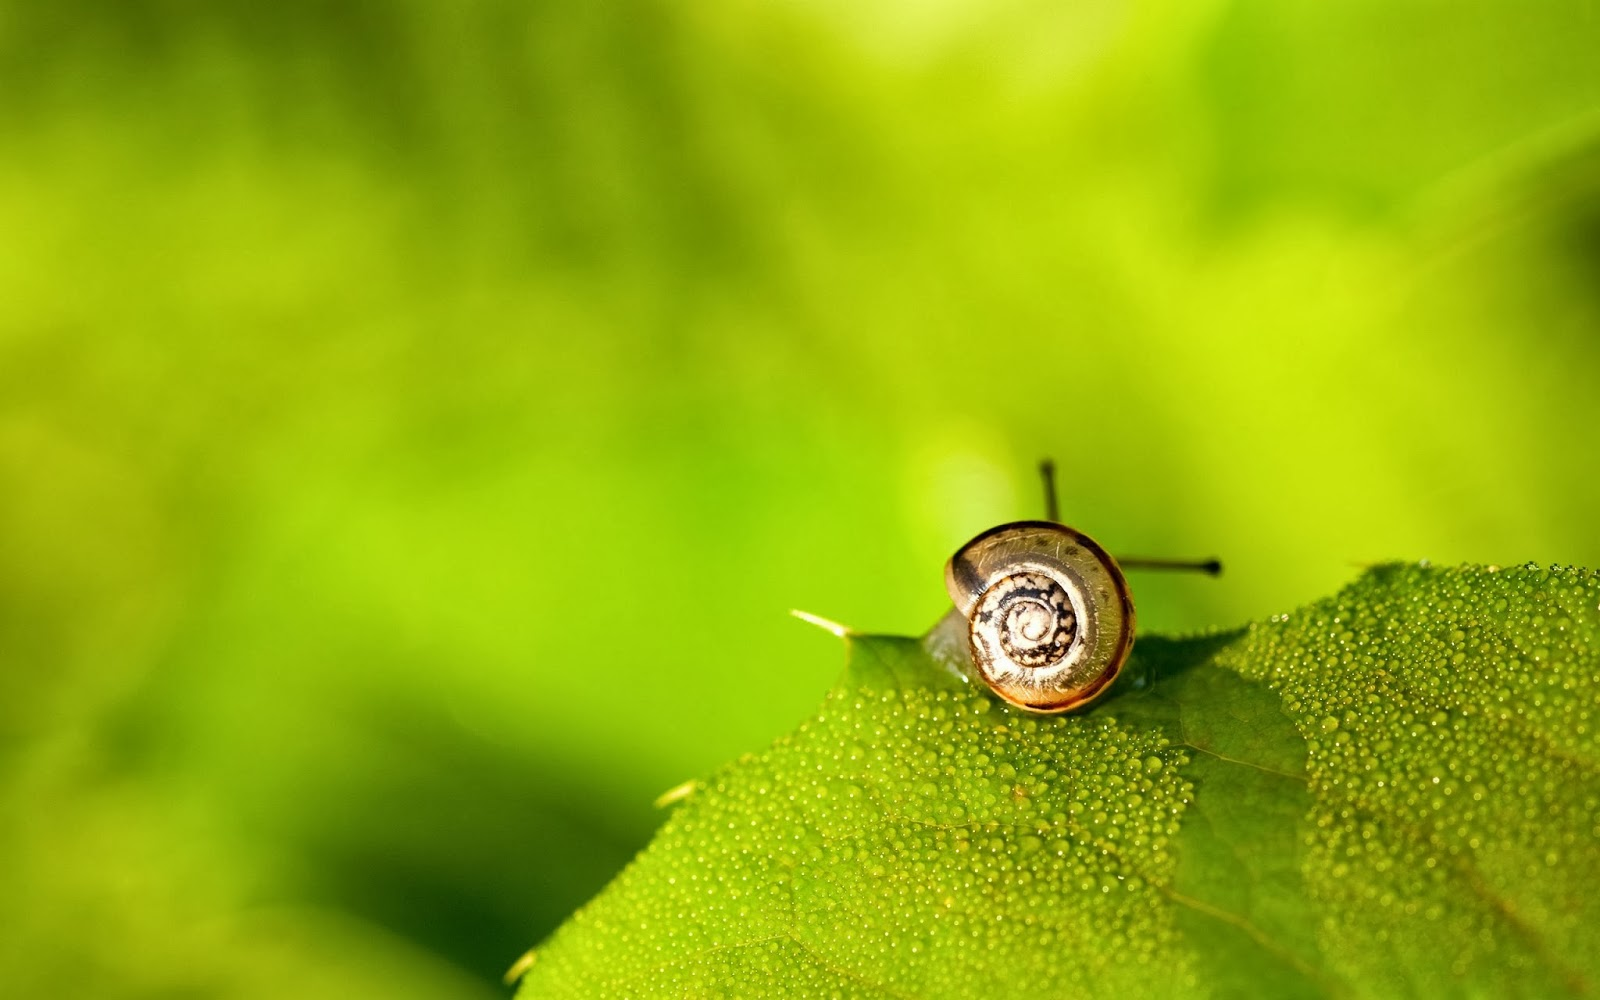 Cute Snail Wallpaper